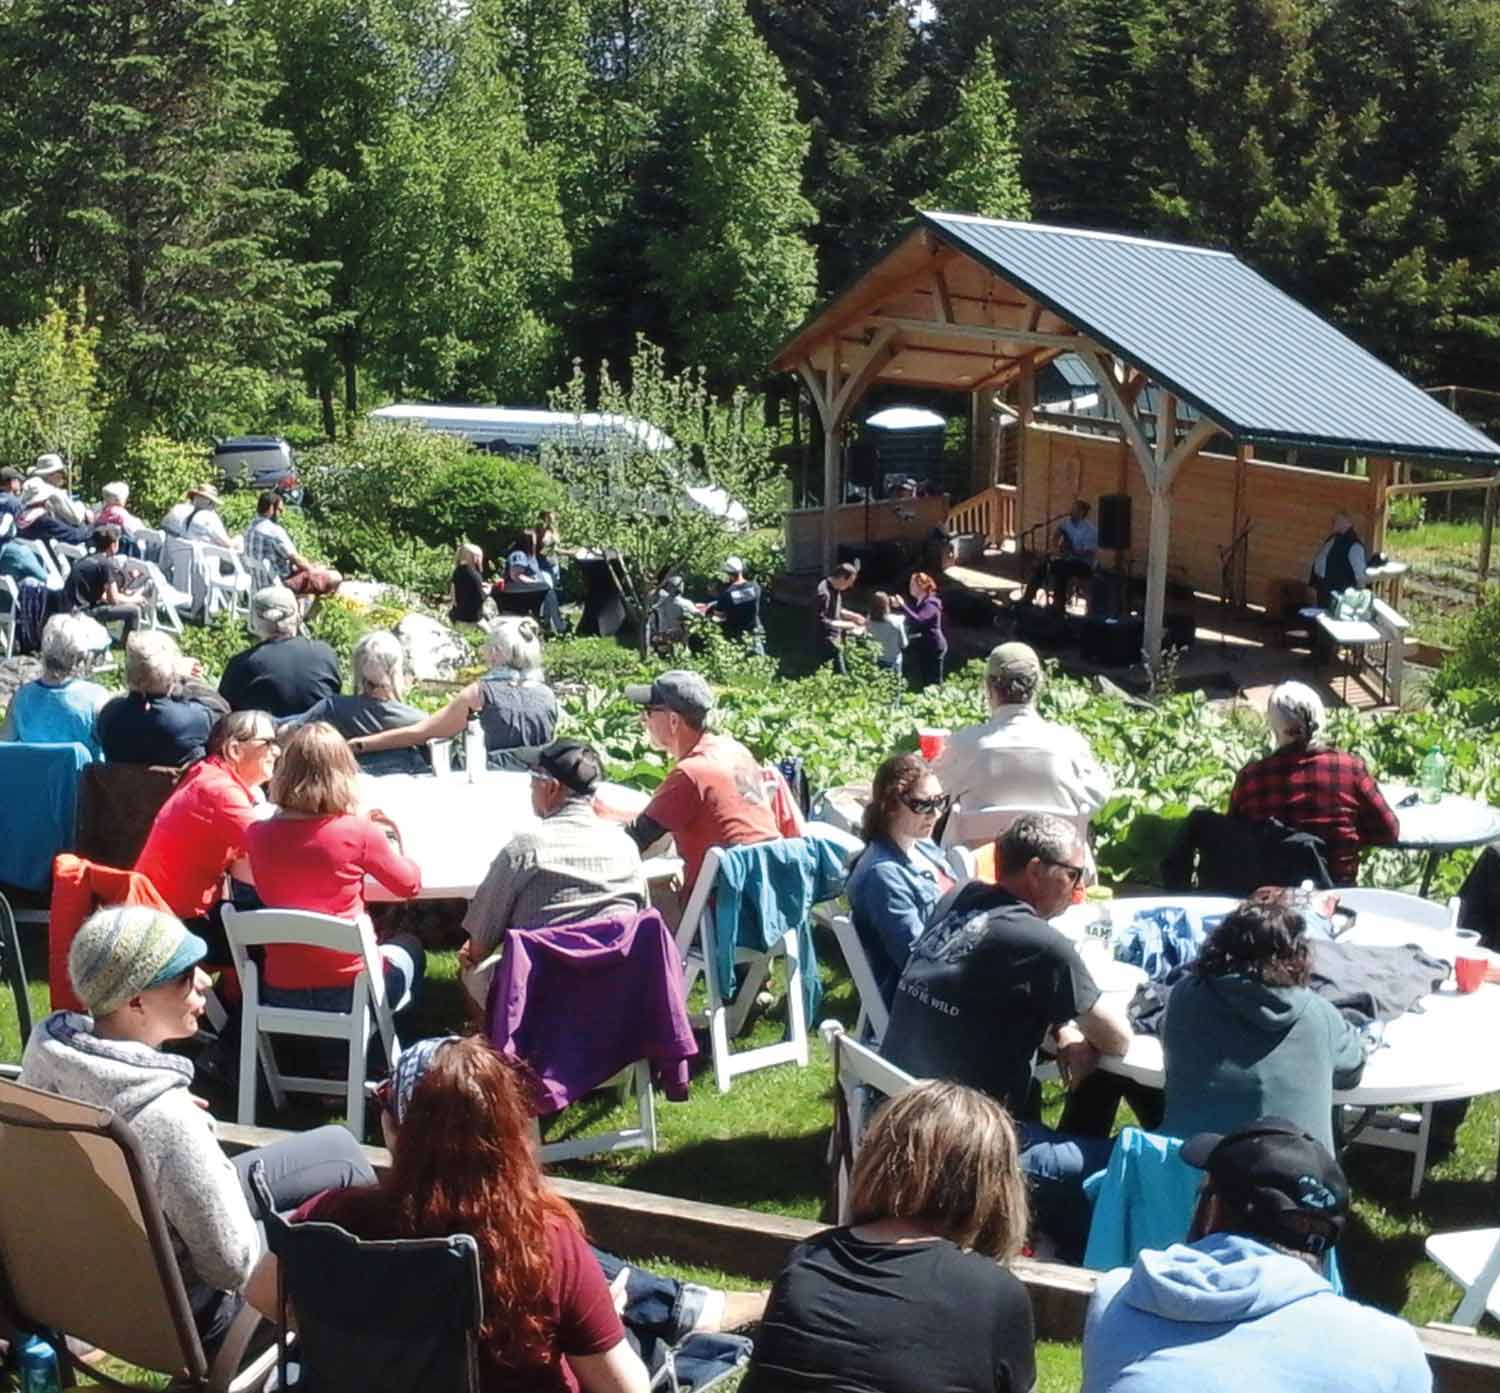 Bear Creek Winery and Lodging's annual music festival